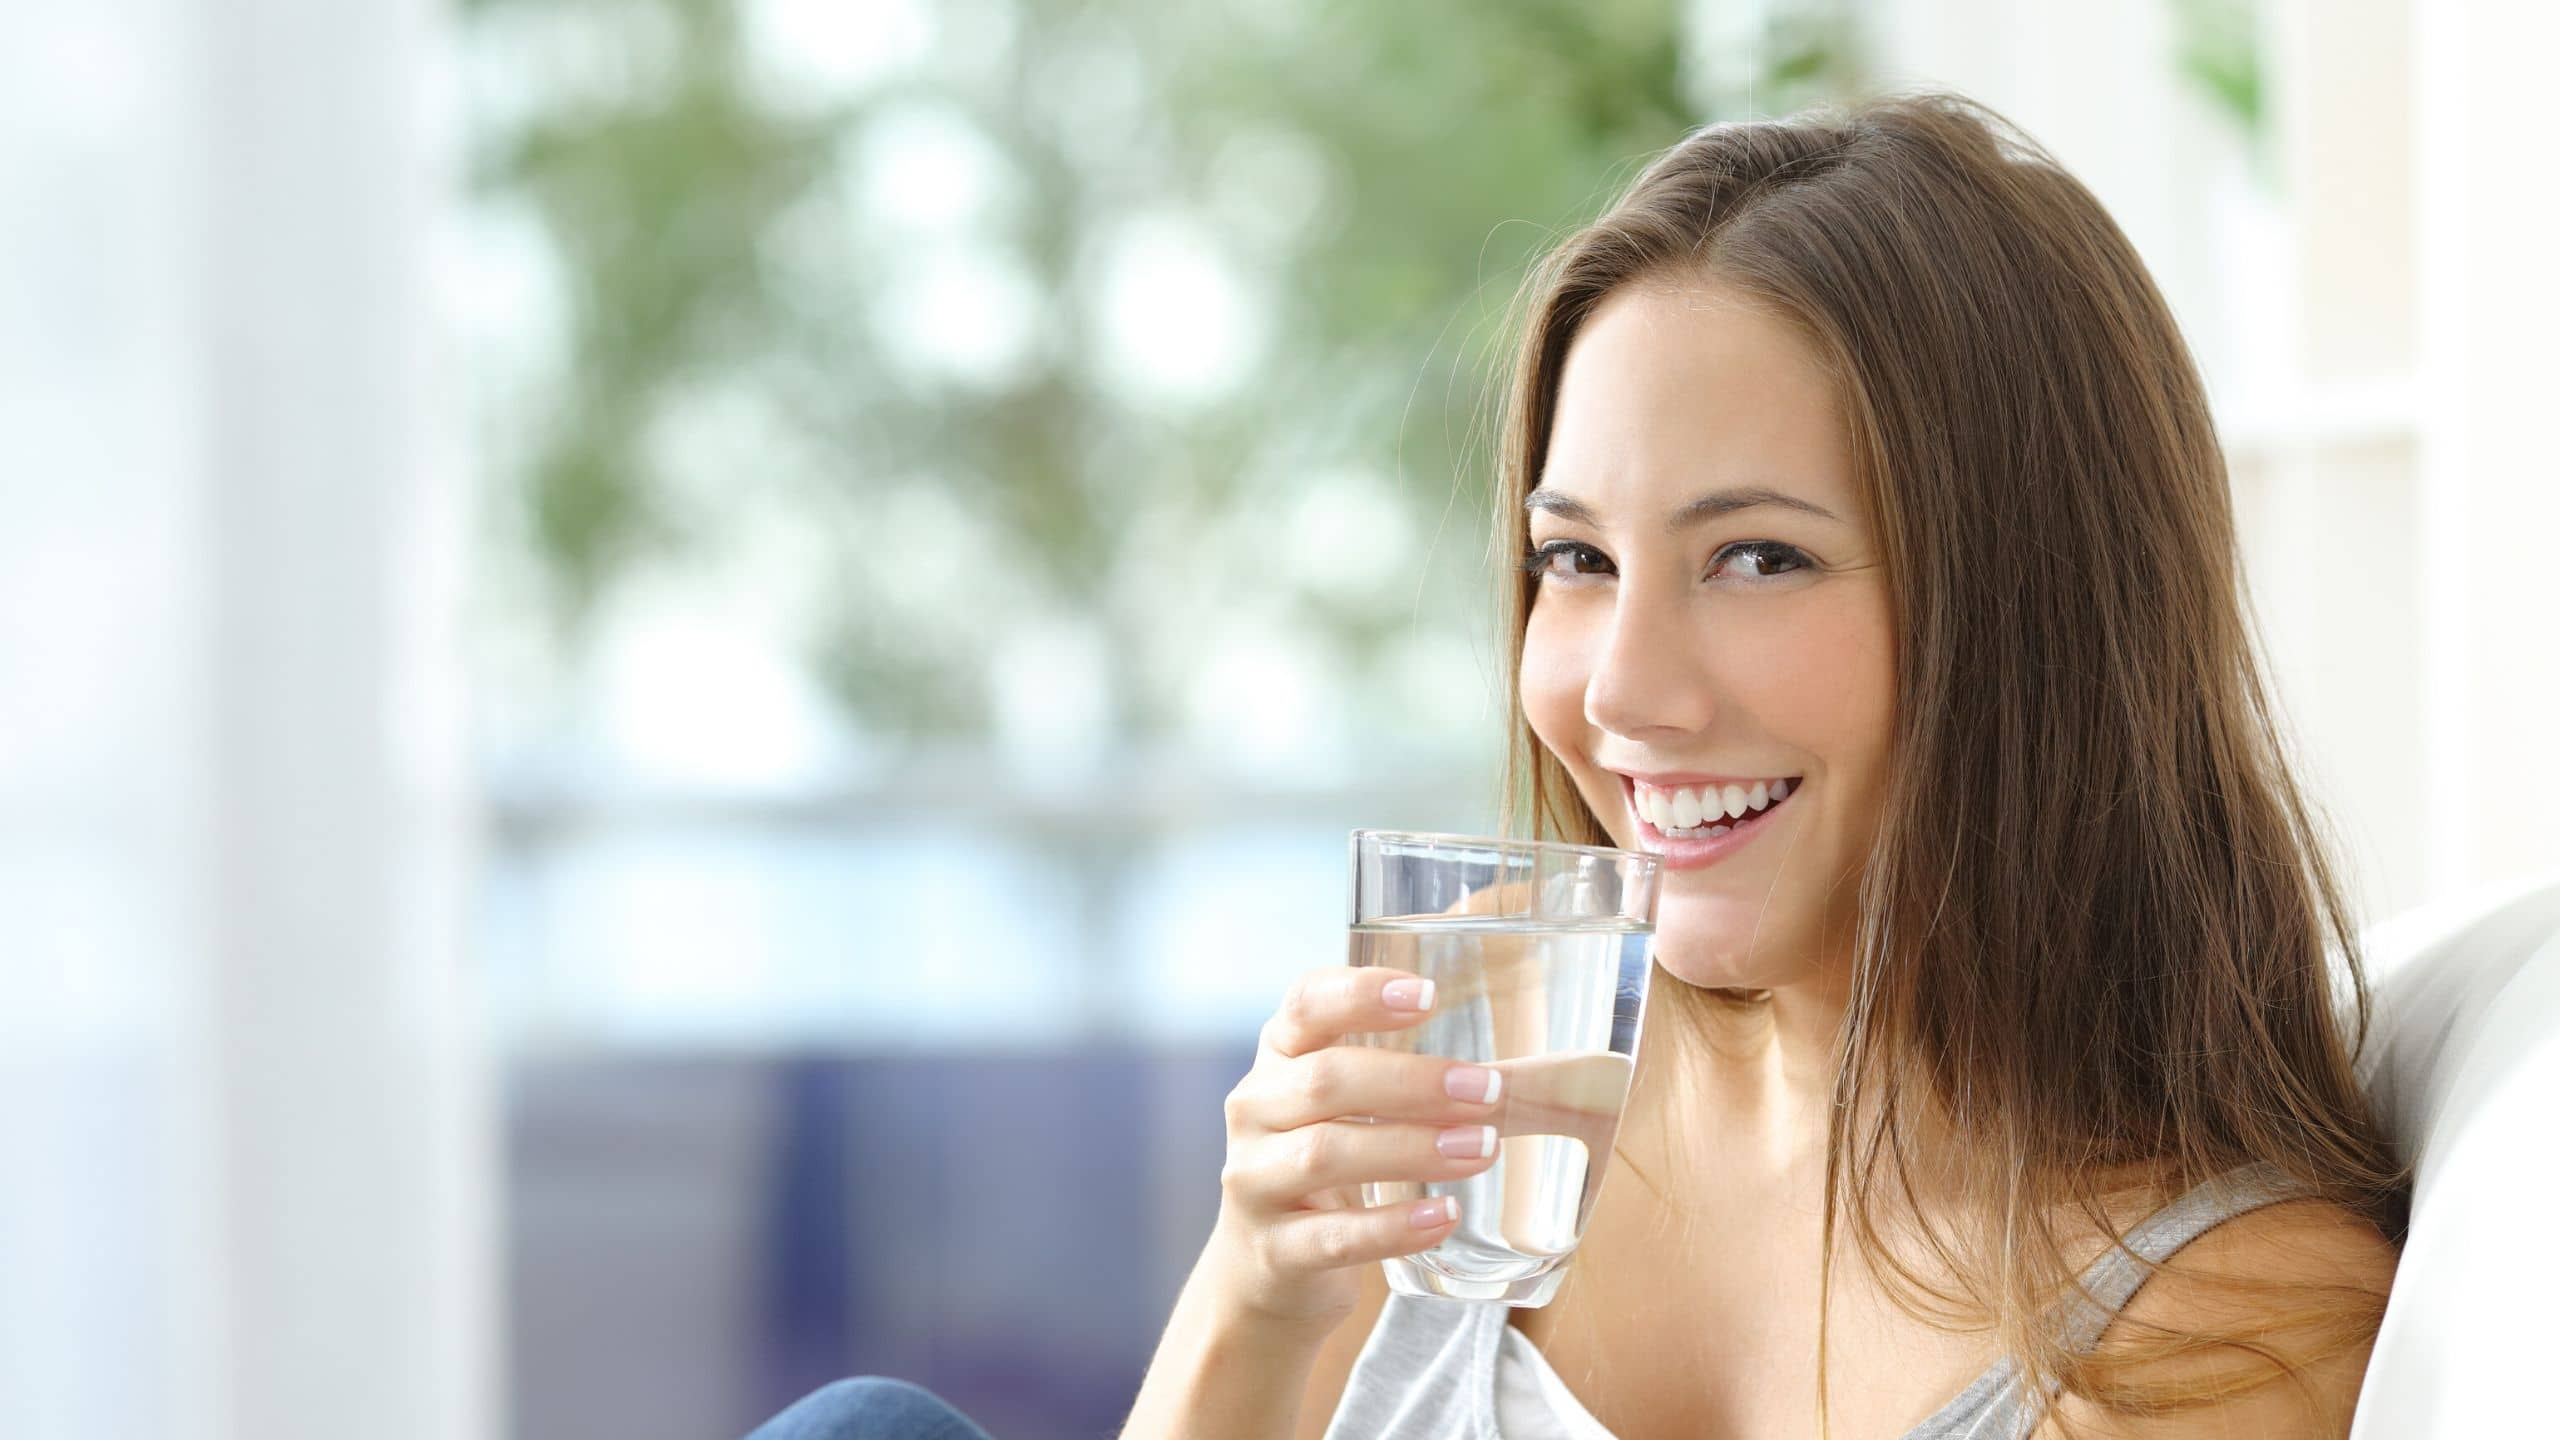 Warm Water Benefits: Stay Healthy and Fit